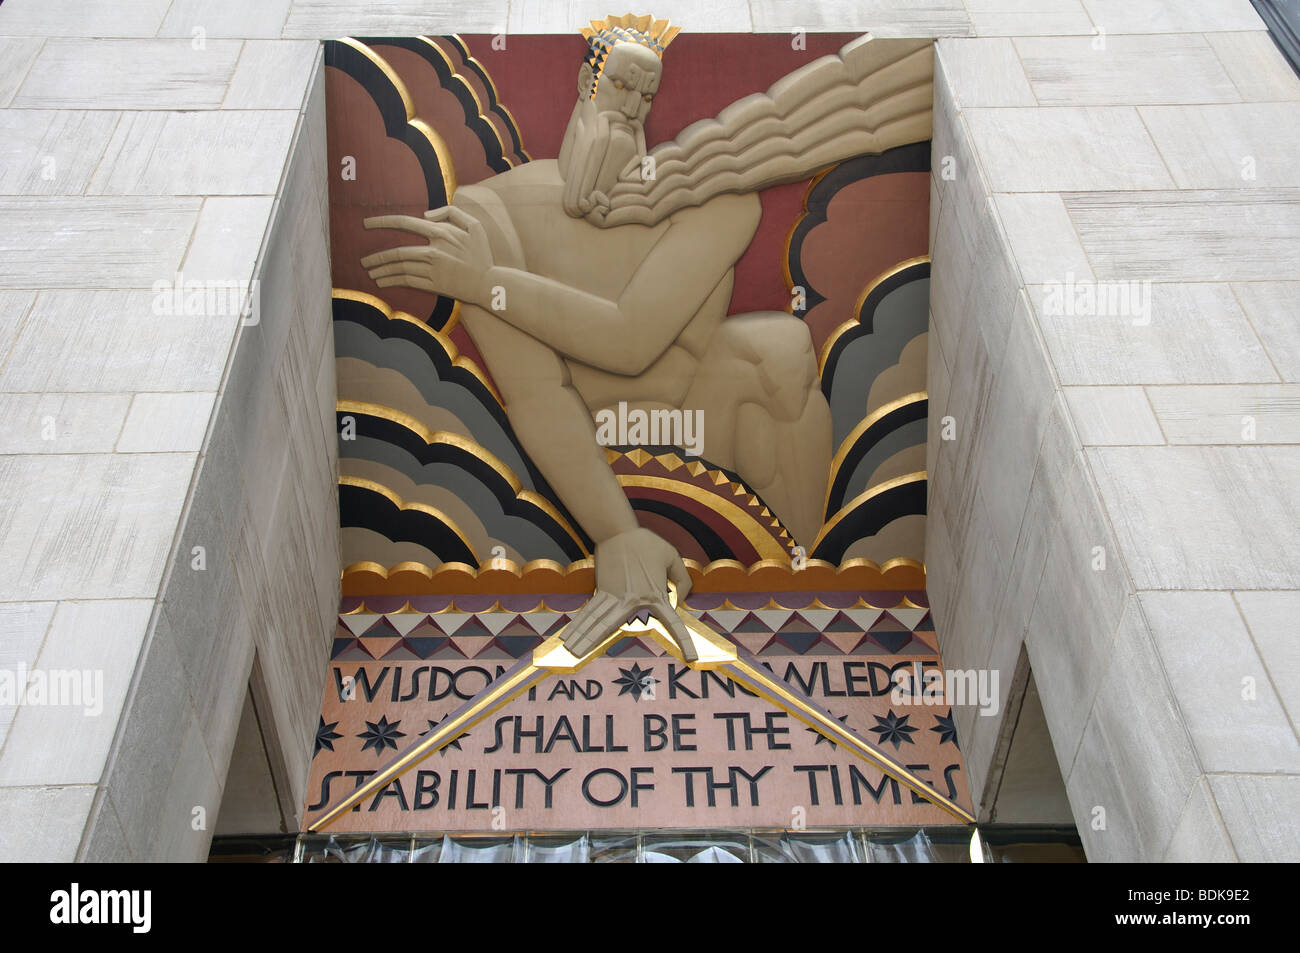 'Wisdom & Knowledge Shall be the Stability of thy Times'  - entranceway relief sculpture by Lee Lawrie, - Stock Image